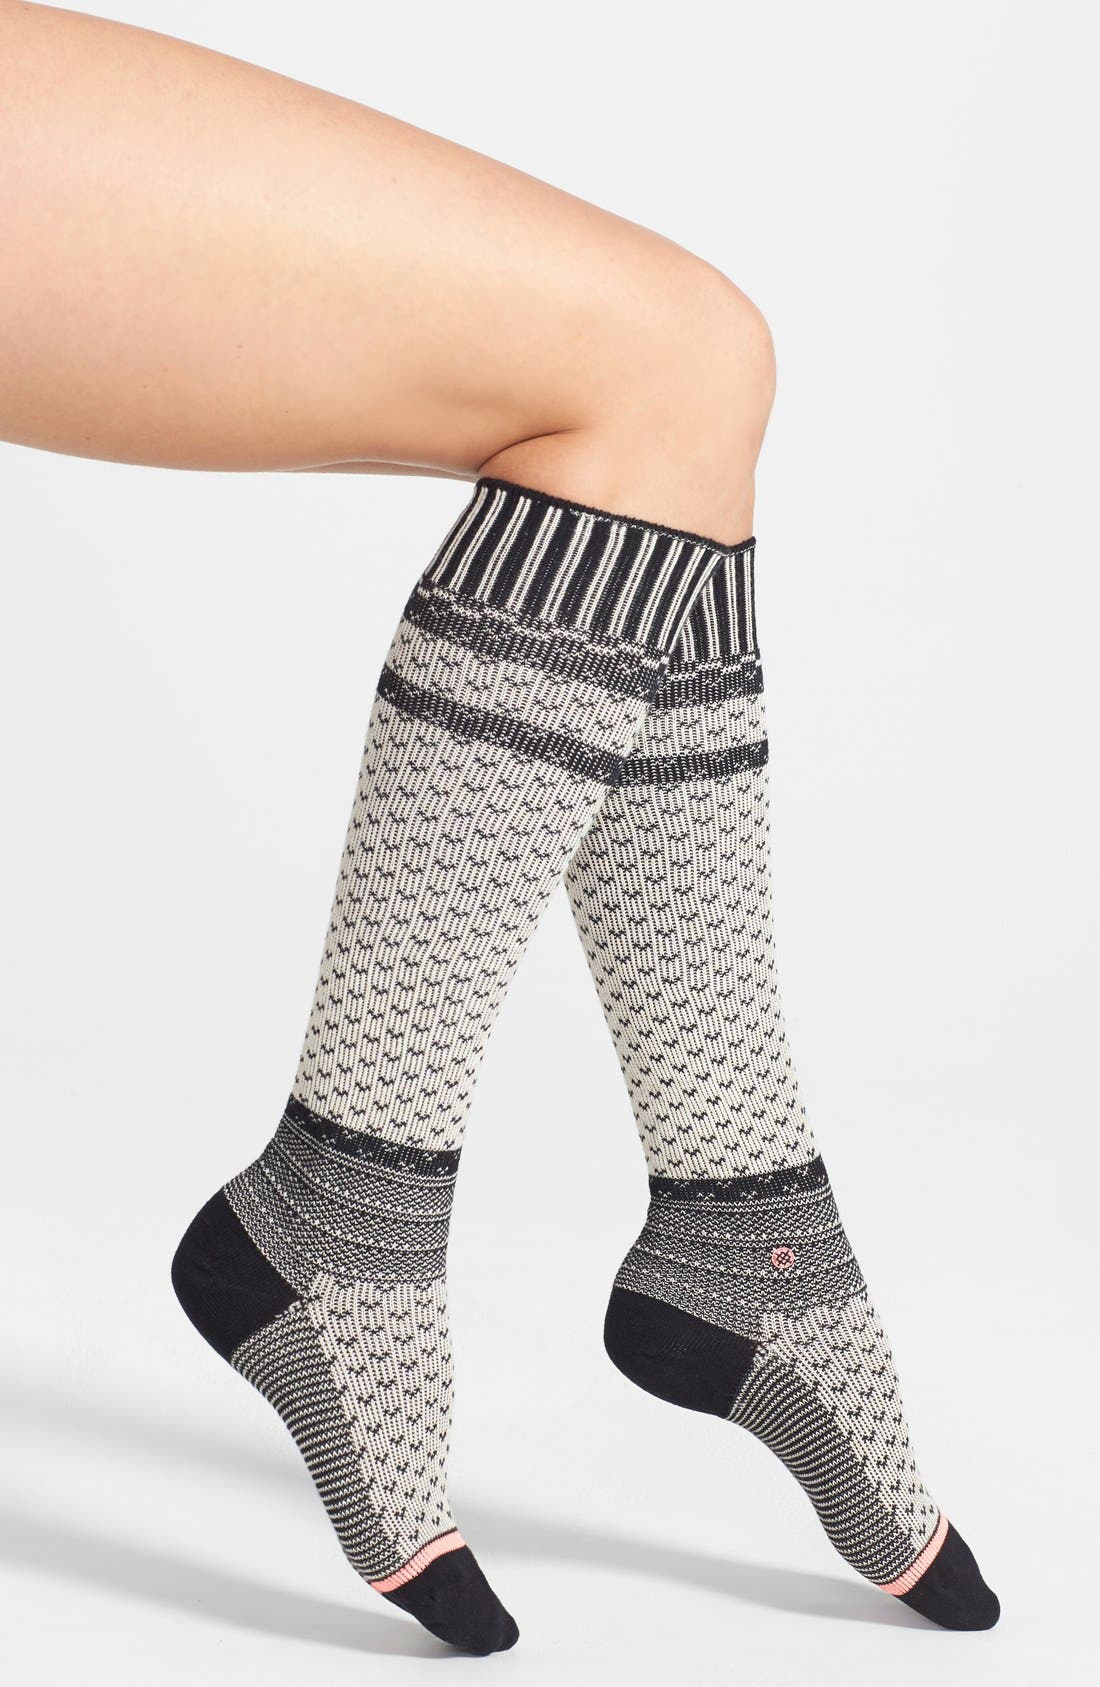 Alternate Image 1 Selected - Stance 'Frosted' Knee High Socks